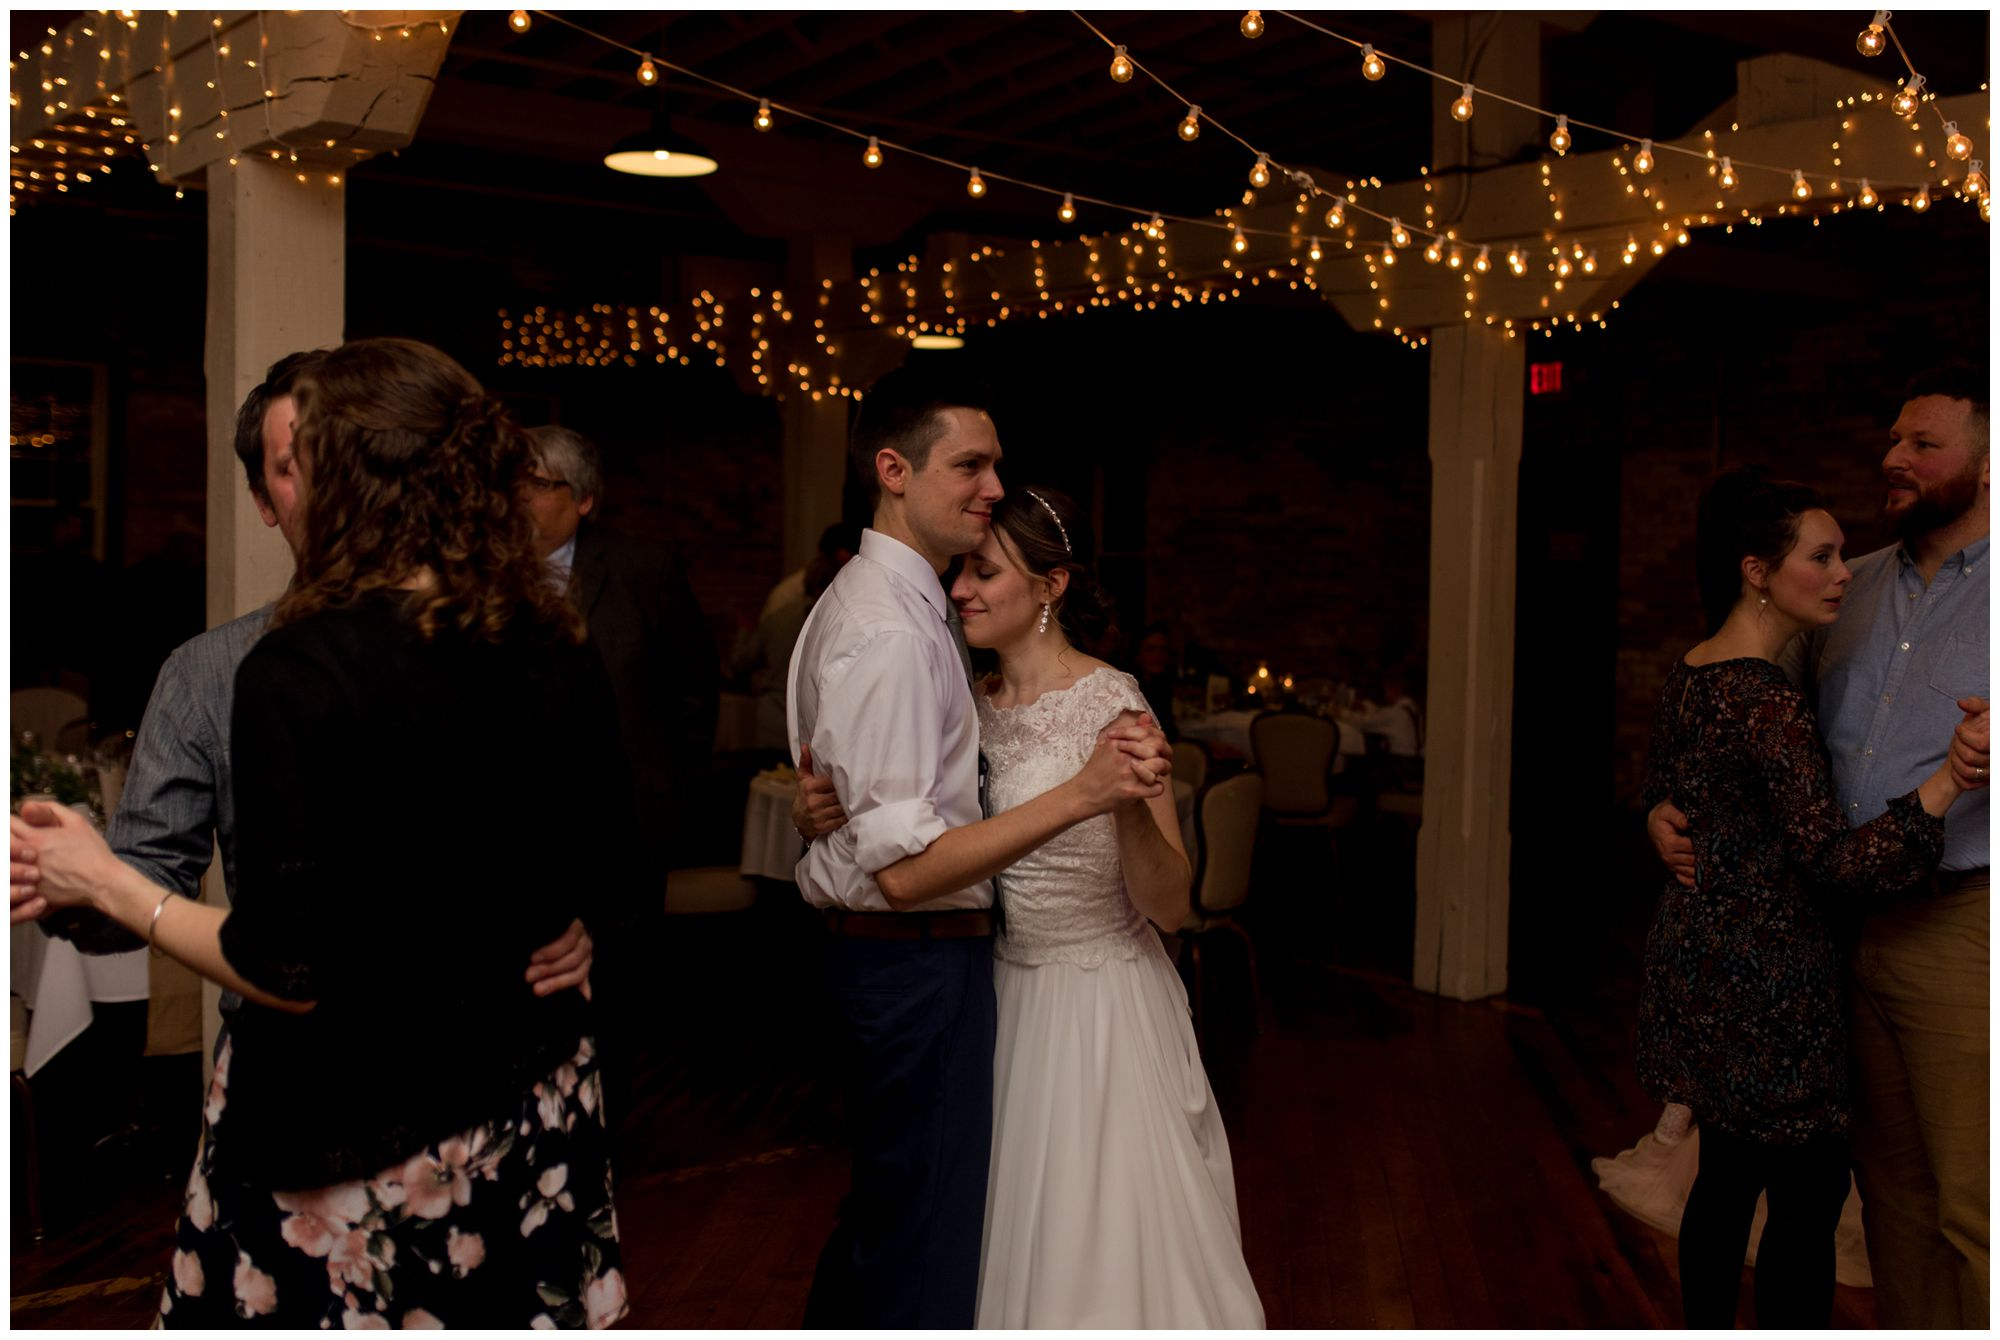 bride and groom dance together at Bread & Chocolate wedding reception